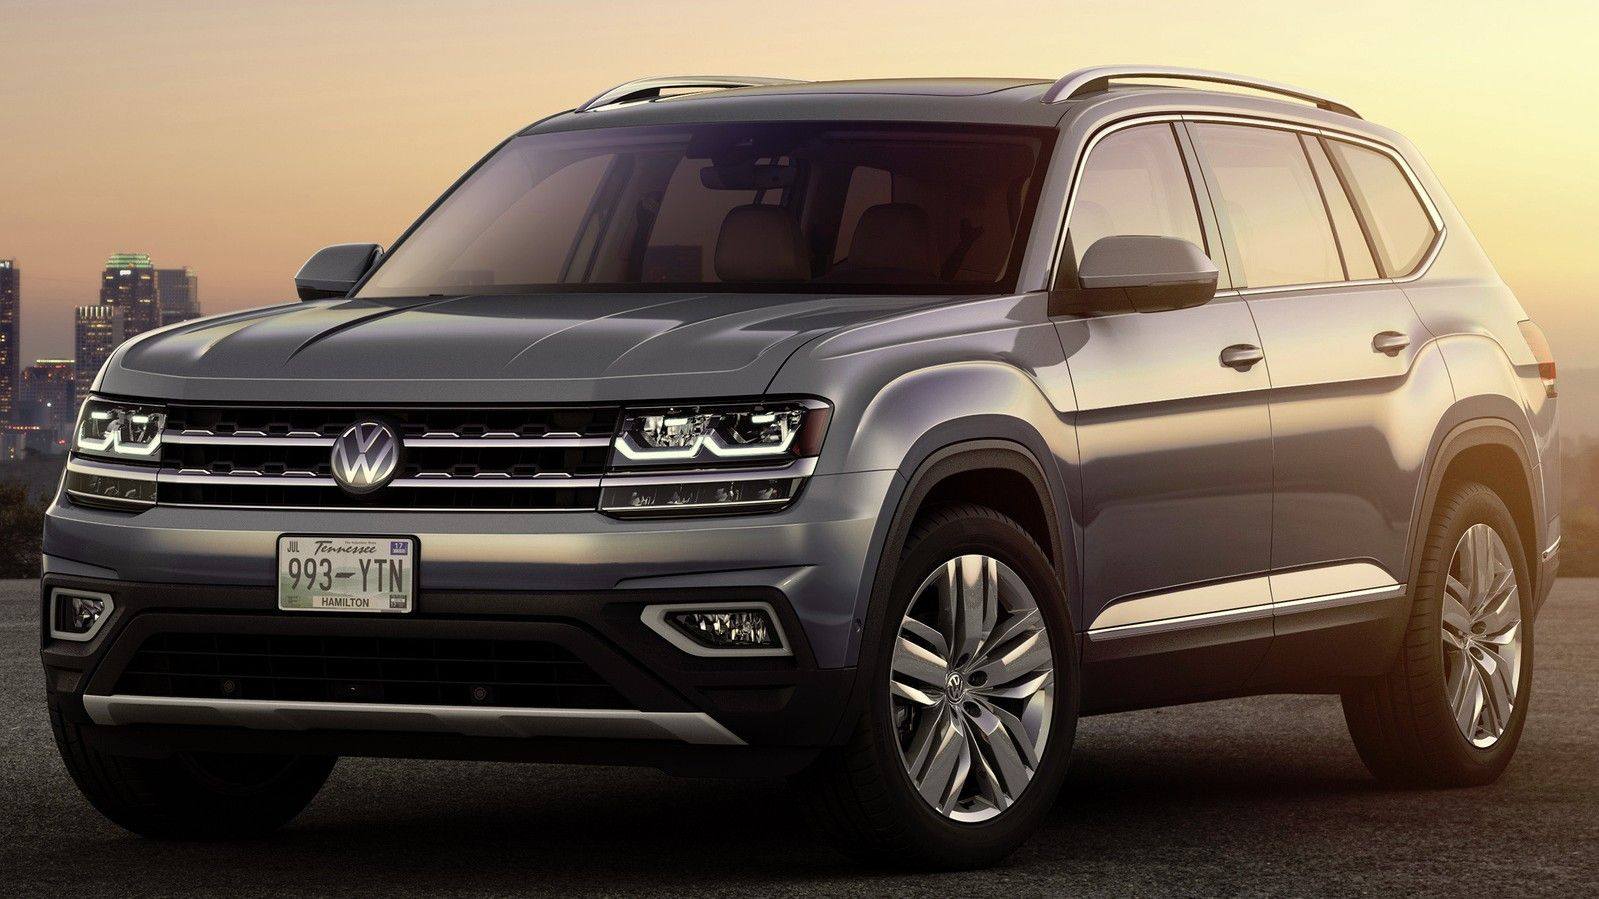 2019 Volkswagen Atlas Front Three quarter View